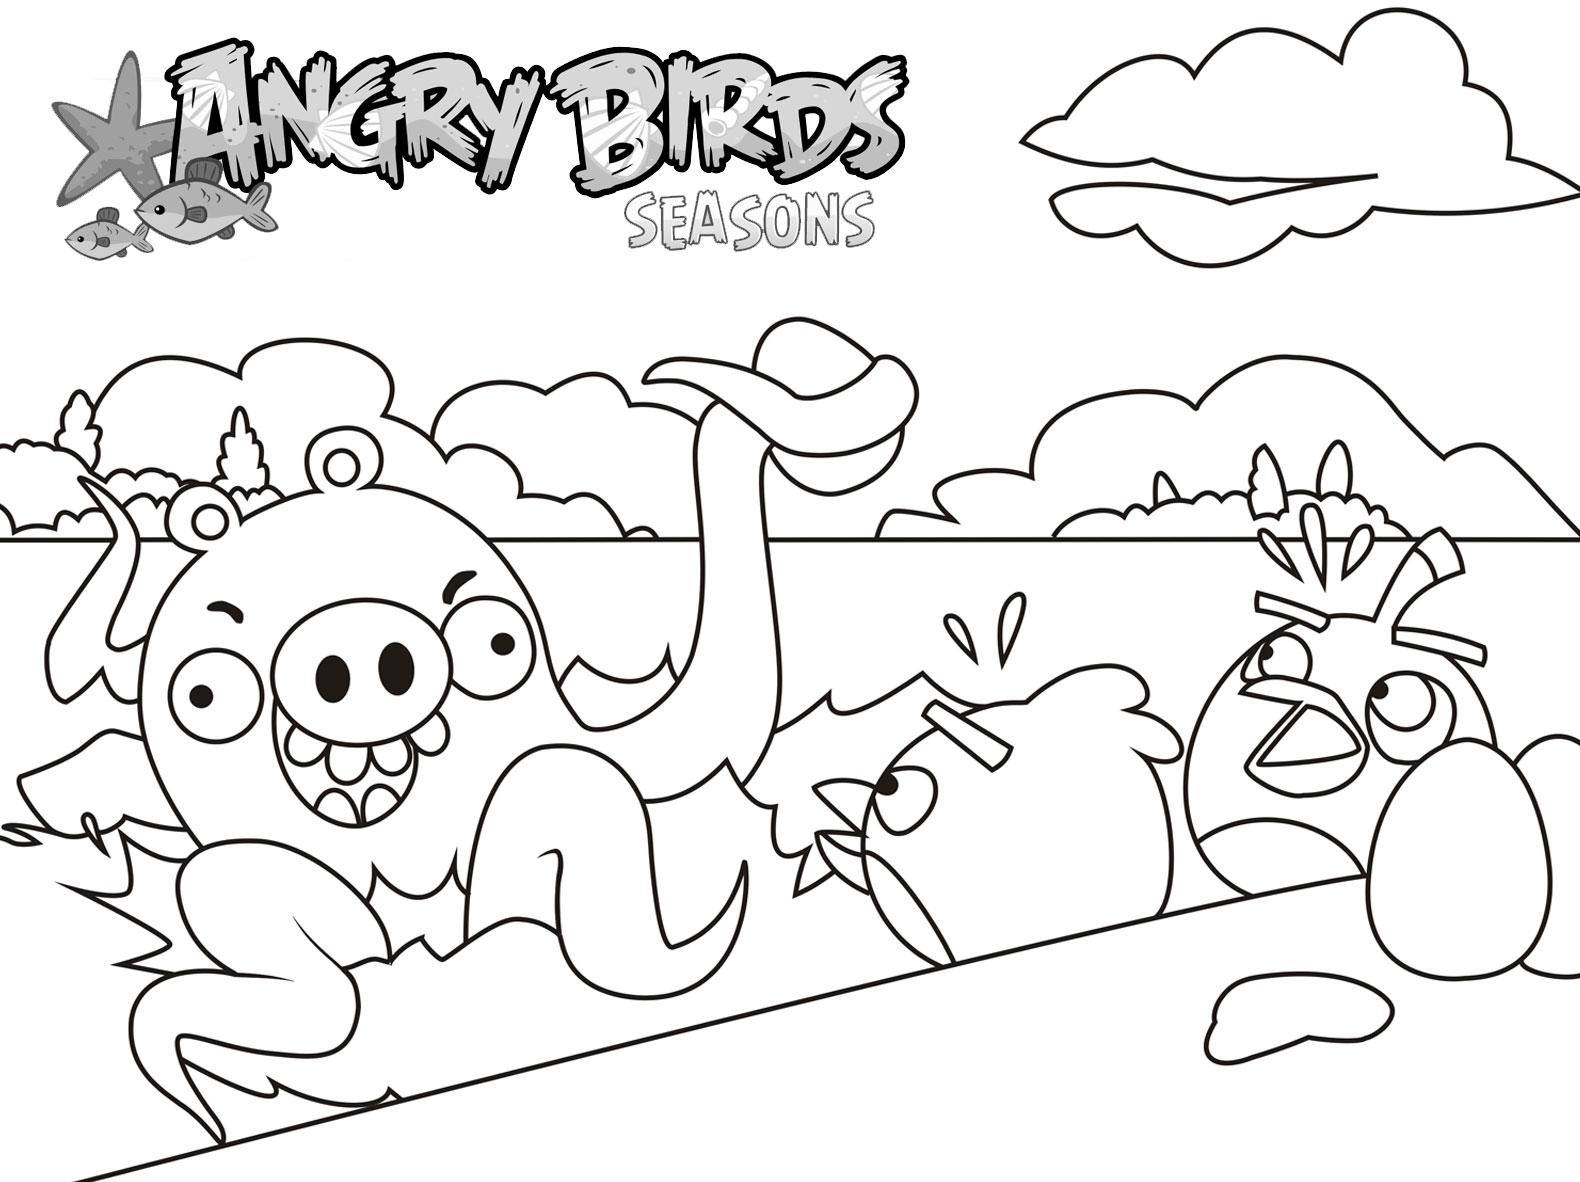 Dibujo para colorear de Angry Birds Seasons: Red y Black ven un pulpo gigante